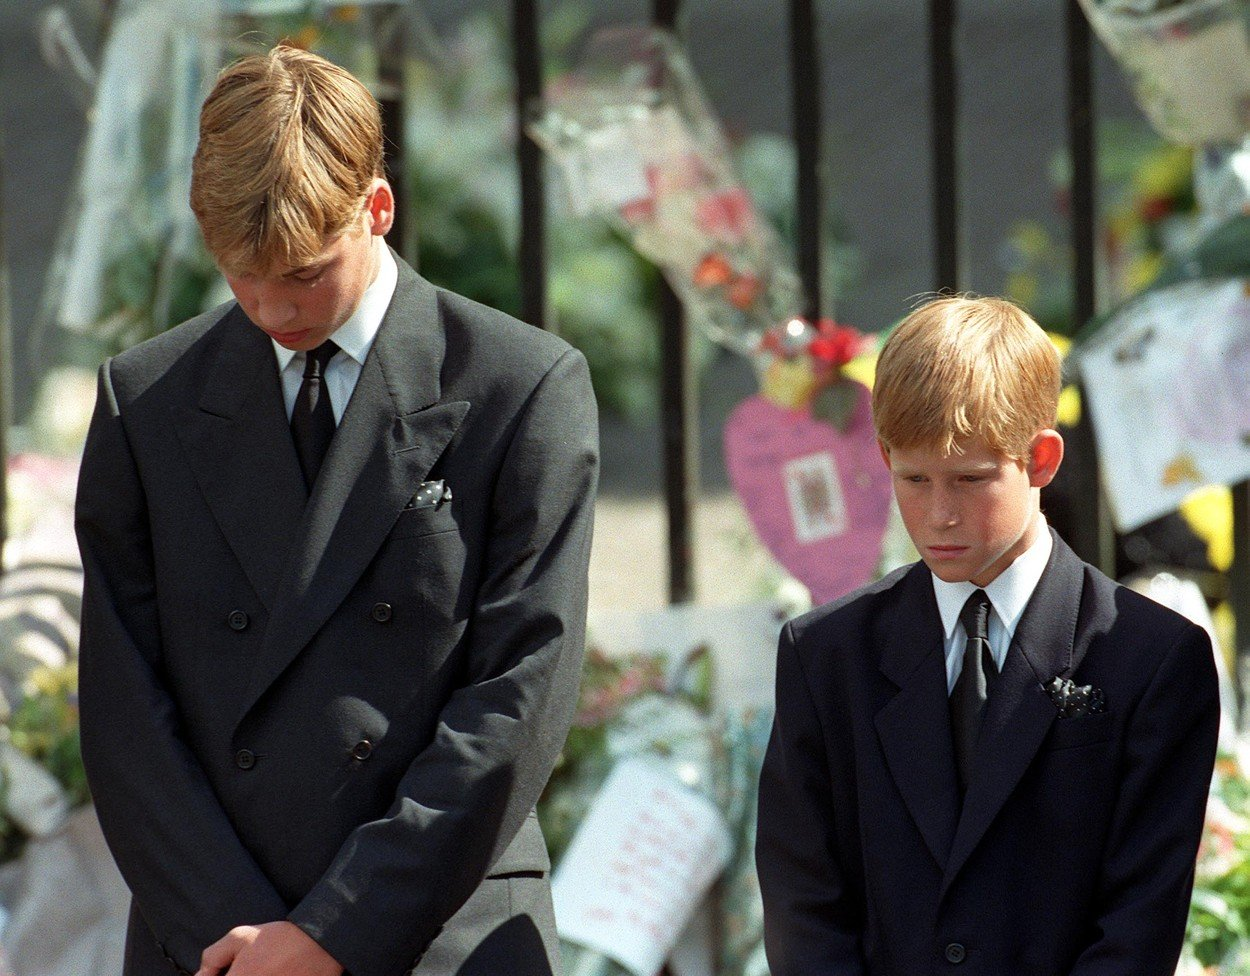 "Embargoed to 0001 Wednesday August 23 File photo dated 06/09/1997 of Prince William (left) and Prince Harry, the sons of Diana, Princess of Wales, bow their heads as their mother's coffin is taken out of Westminster Abbey following her funeral service. The Duke of Cambridge has confessed to using his fringe as a ""safety blanket"" when walking behind his mother's funeral cortege., Image: 346153637, License: Rights-managed, Restrictions: FILE PHOTO, Model Release: no, Credit line: Profimedia, Press Association"